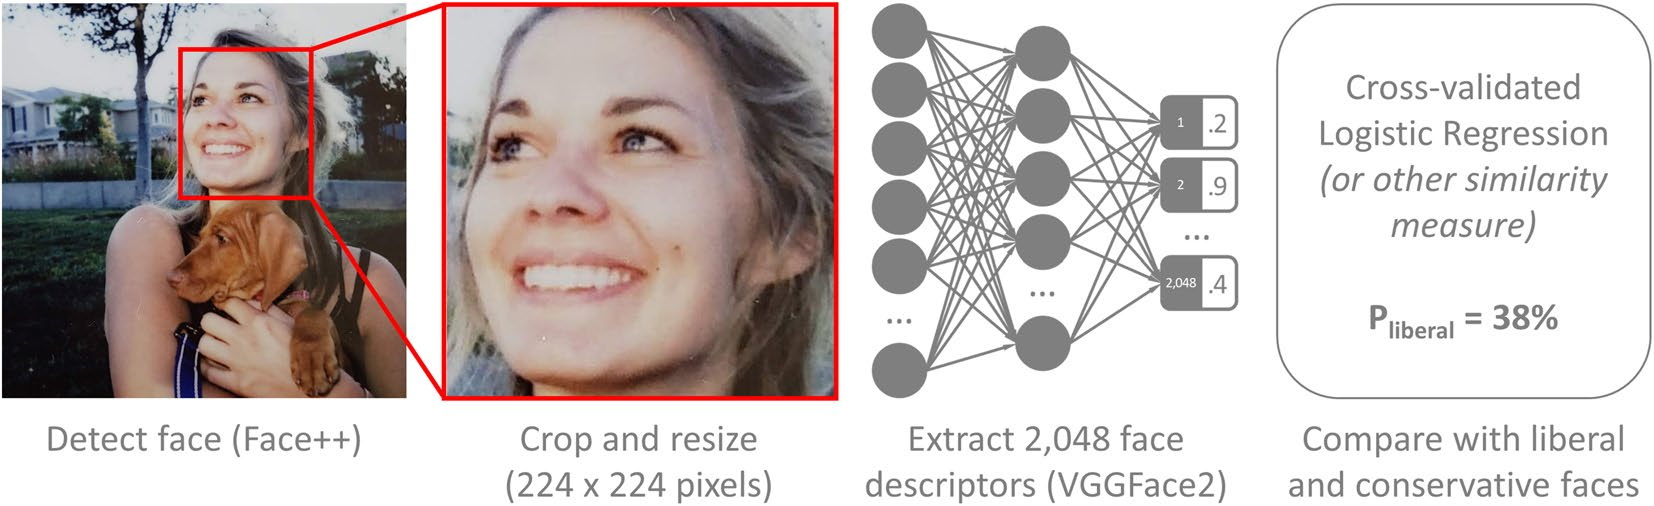 Graph showing how faces are cropped and reduced to representations of neural networks.